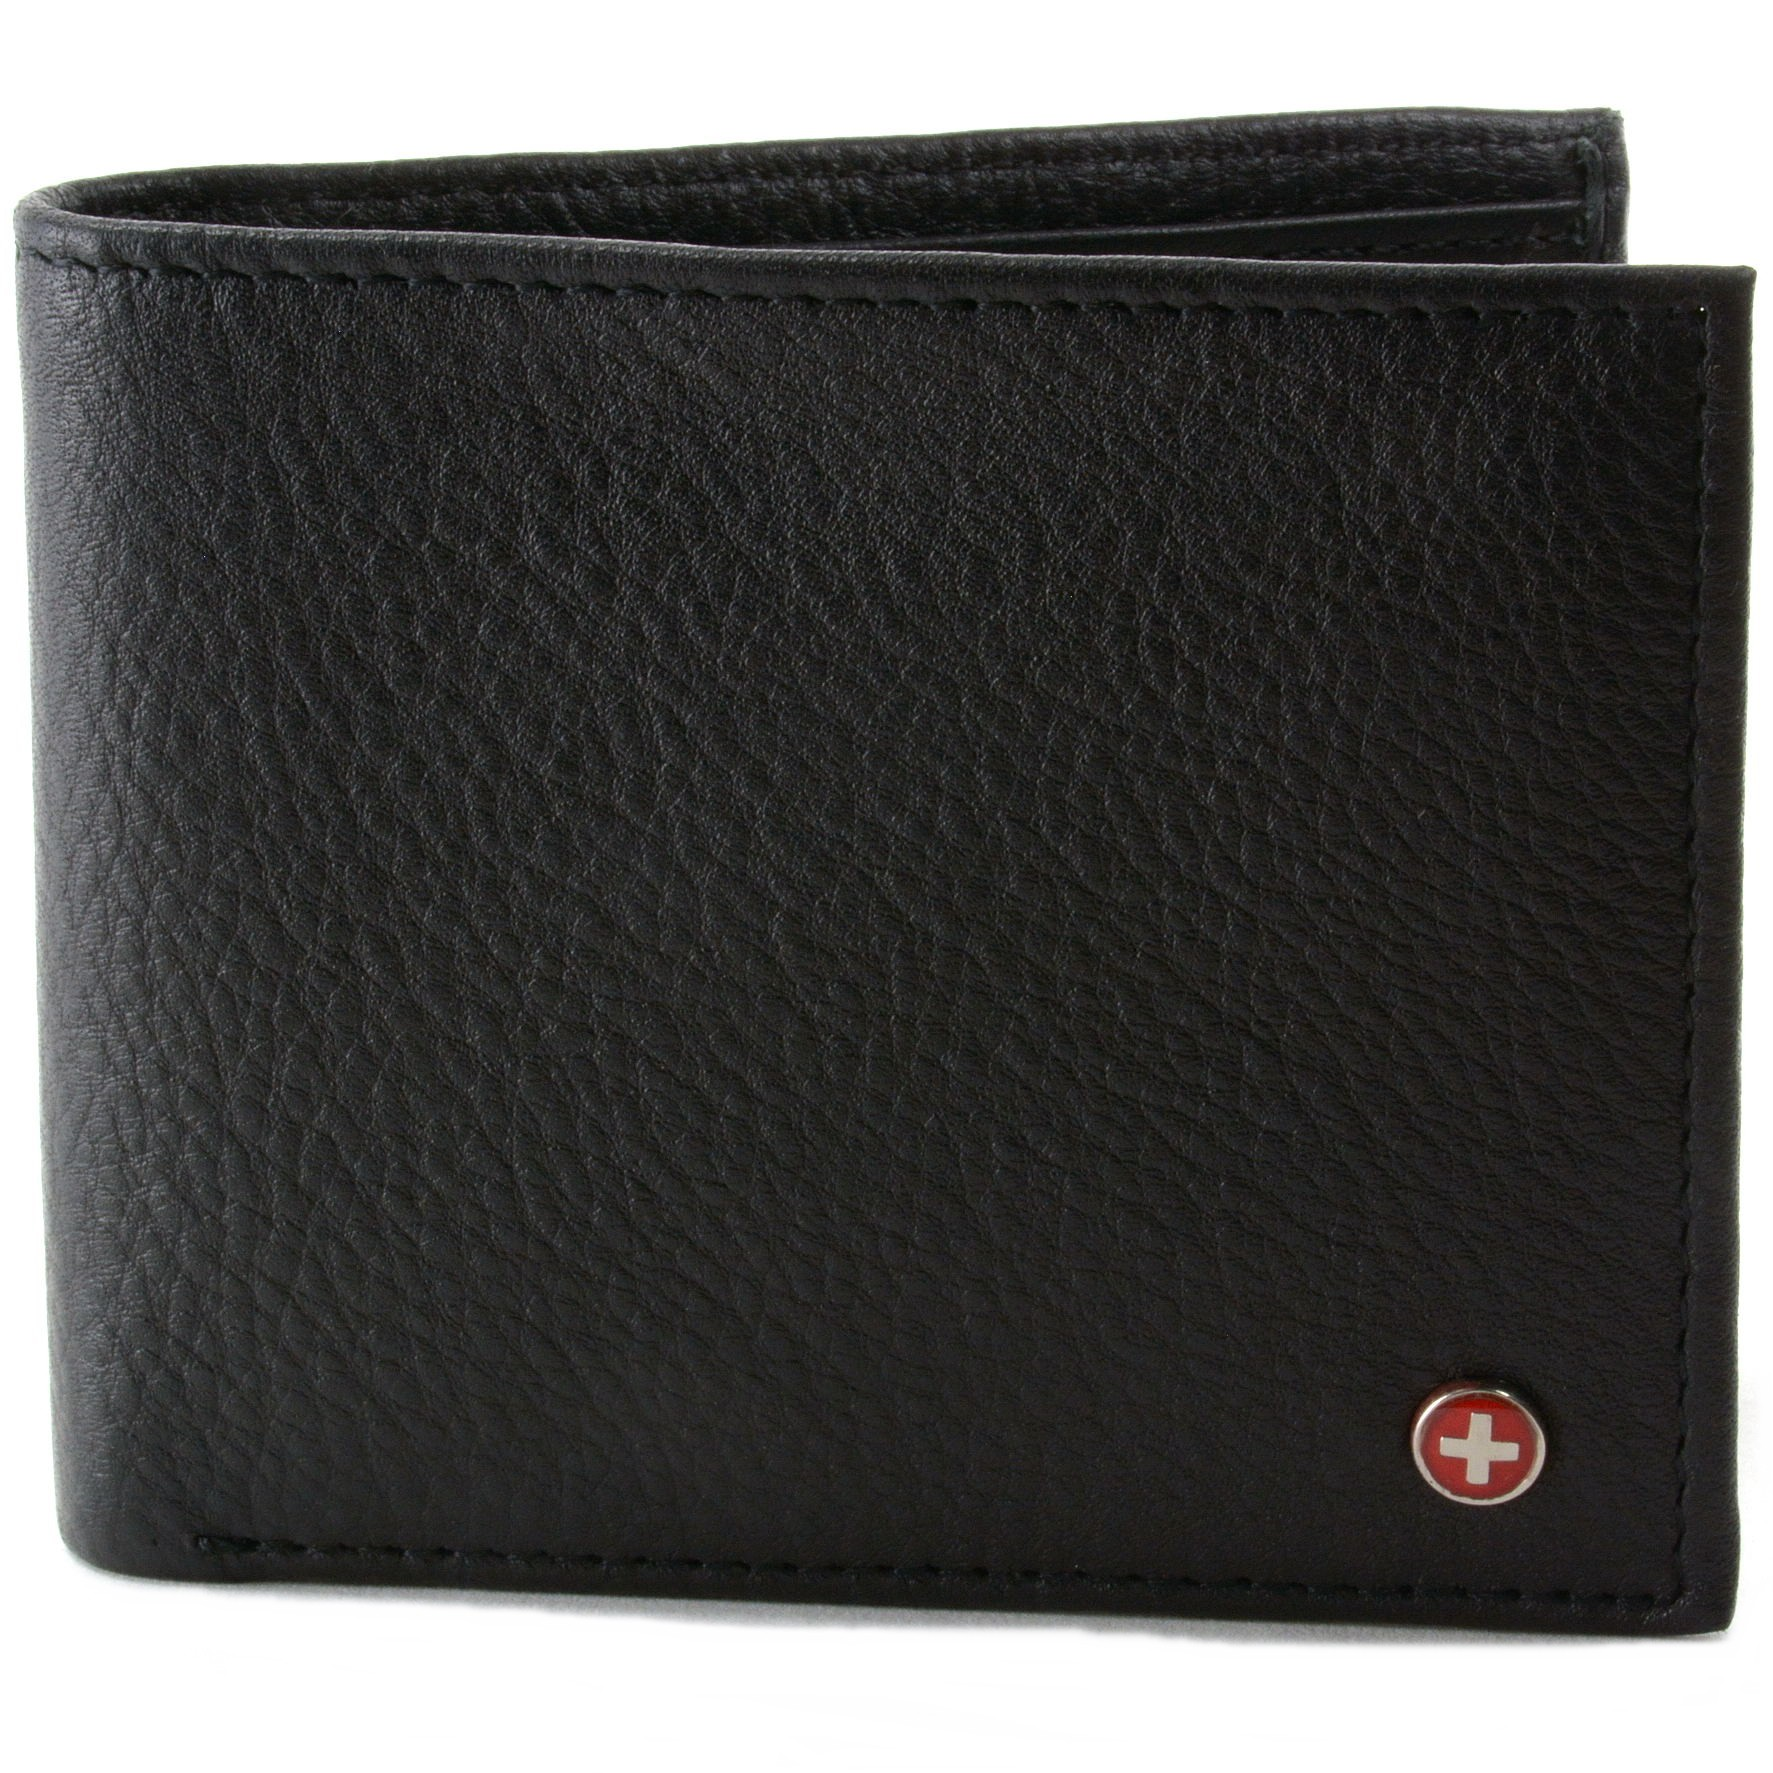 Mens Leather Bifold Wallet Coin Pocket Purse Pouch Alpine Swiss 2 Bill Sections | eBay